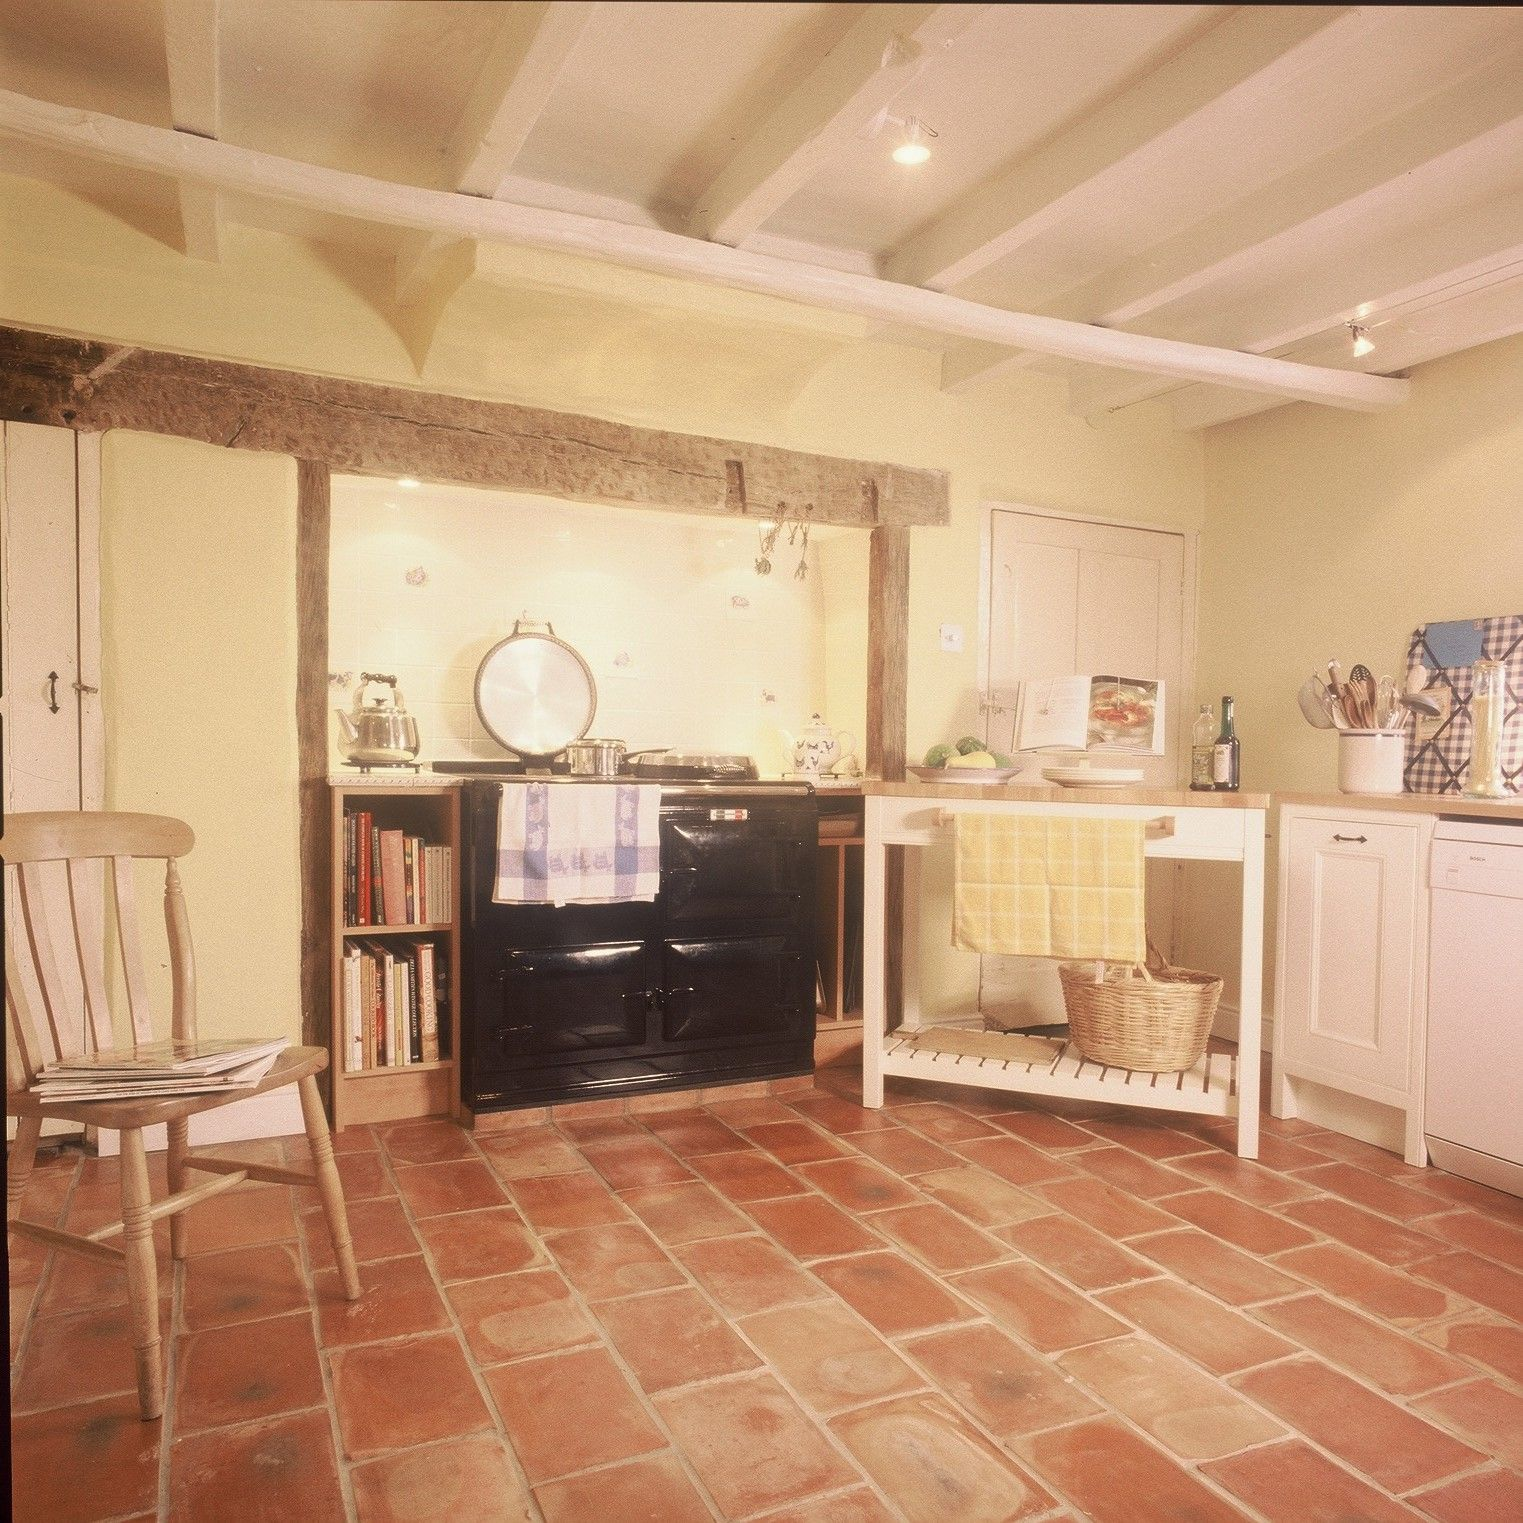 Handmade terracotta floor tiles gallery tile flooring design ideas kitchen with terracotta floor tiles choice image tile flooring a beautiful farmhouse kitchen finished with york dailygadgetfo Choice Image